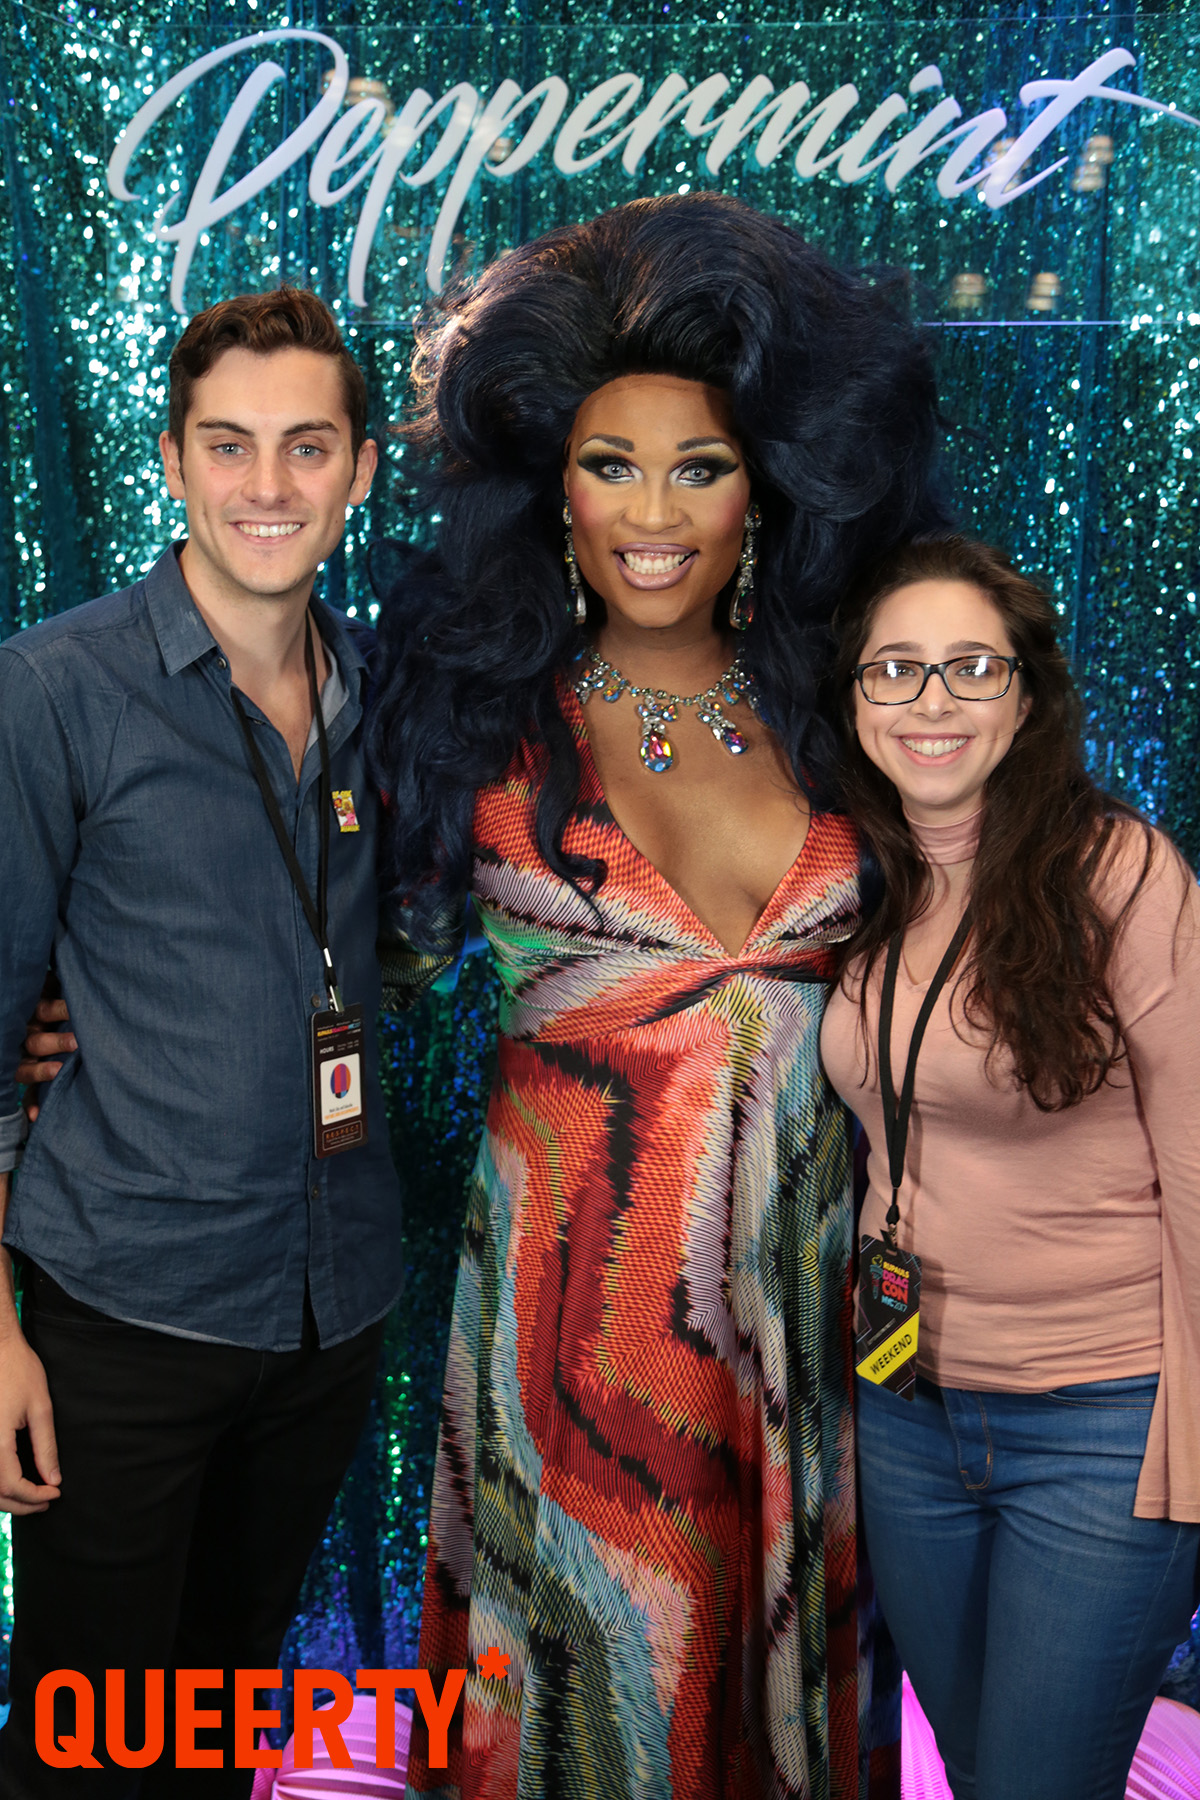 DragConPeppermint-778